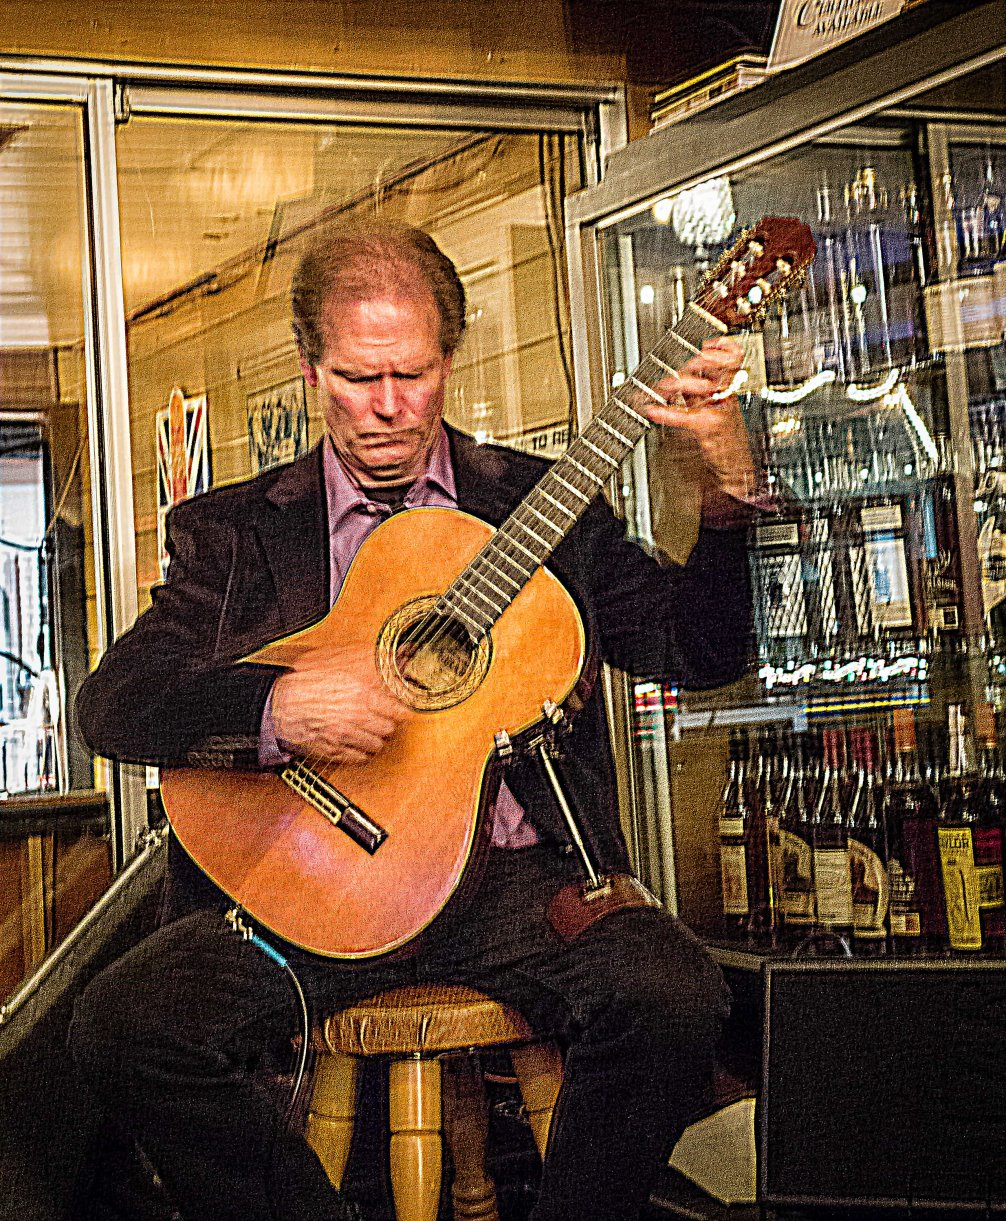 Doug Wendt playing classical guitar.